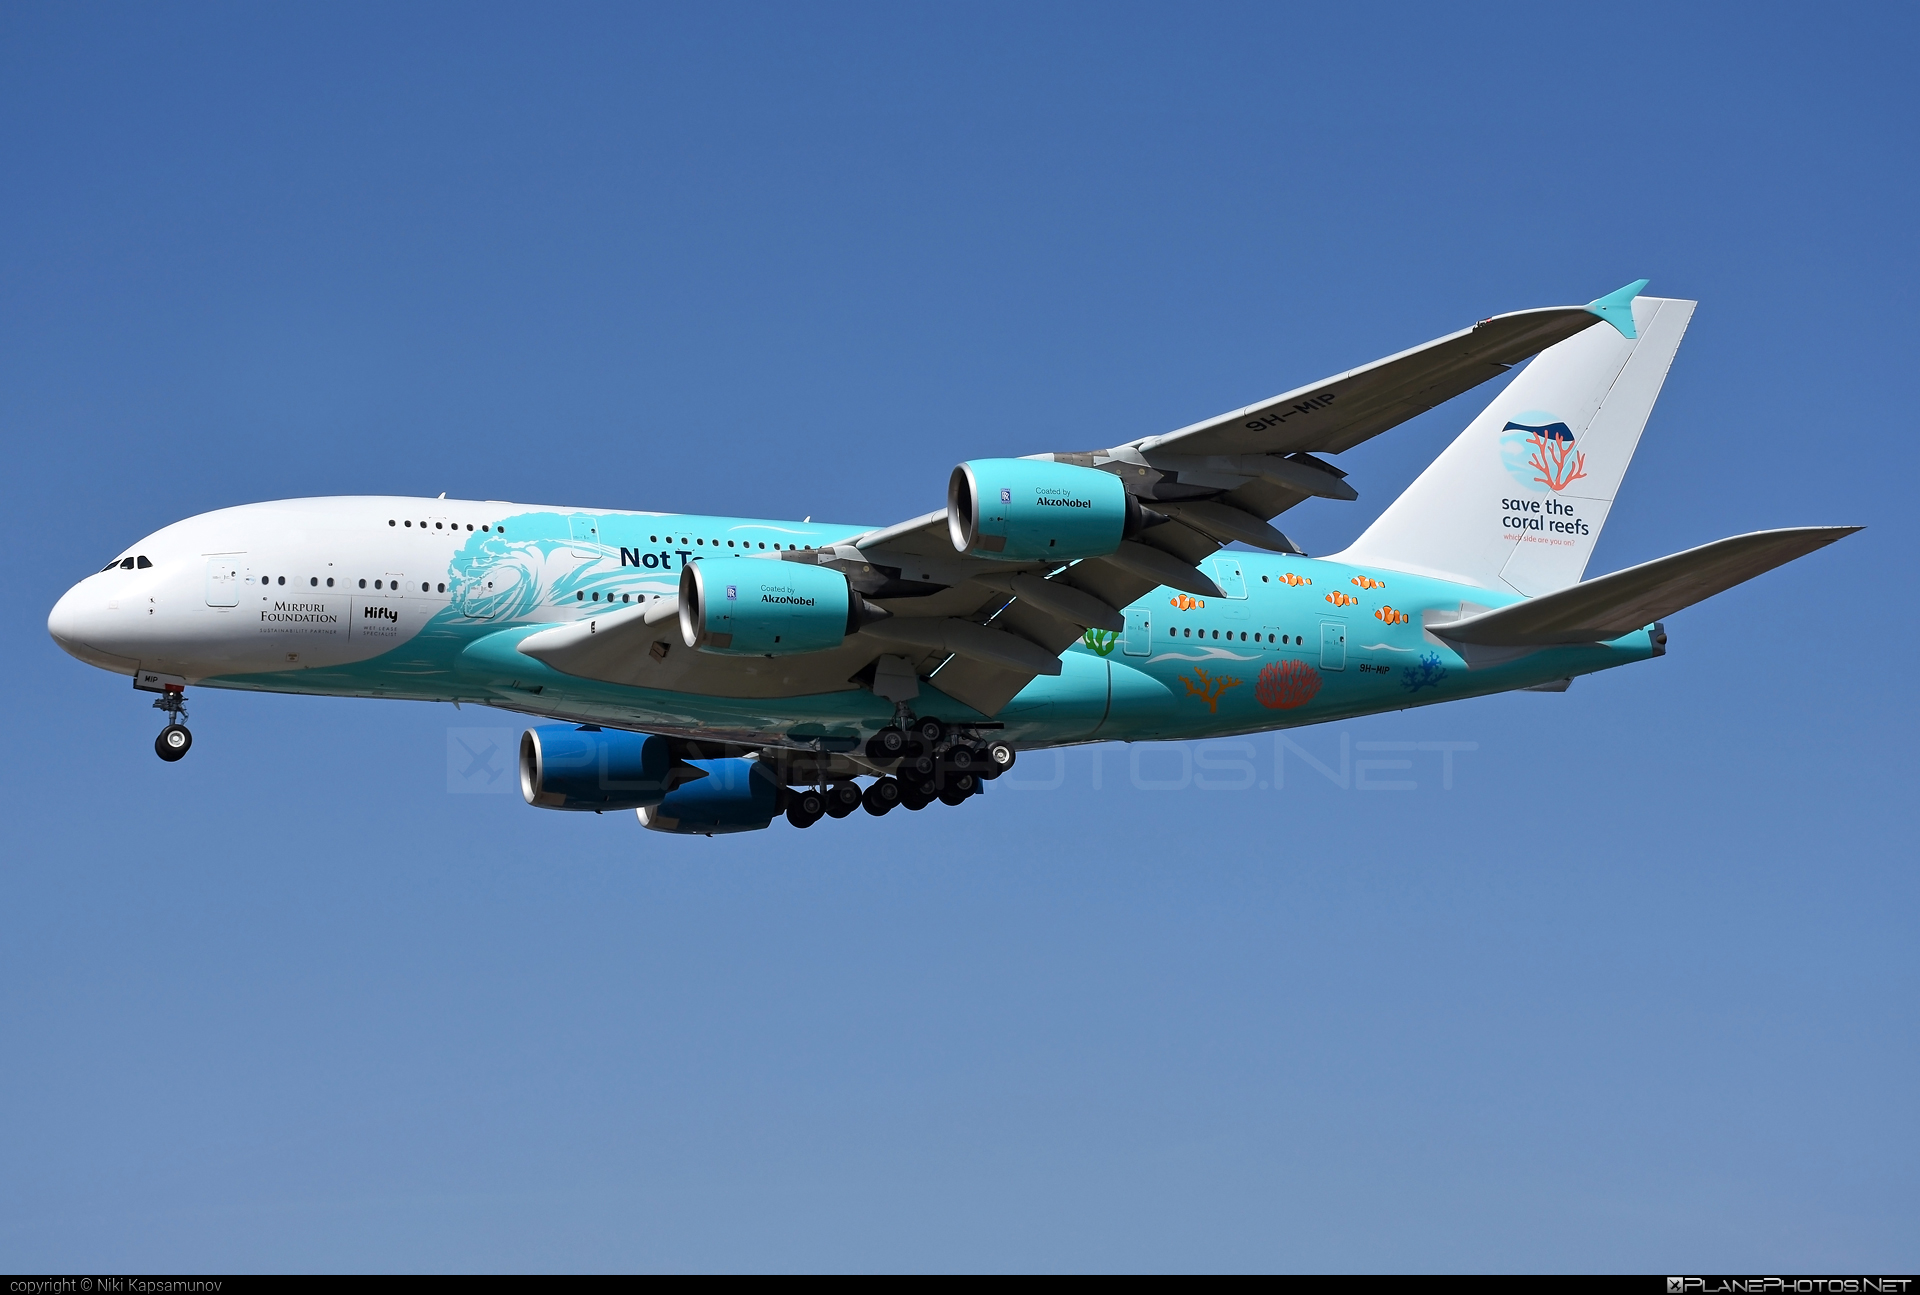 Airbus A380-841 - 9H-MIP operated by Hi Fly Malta #a380 #a380family #airbus #airbus380 #hifly #hiflymalta #savethecoralreefs